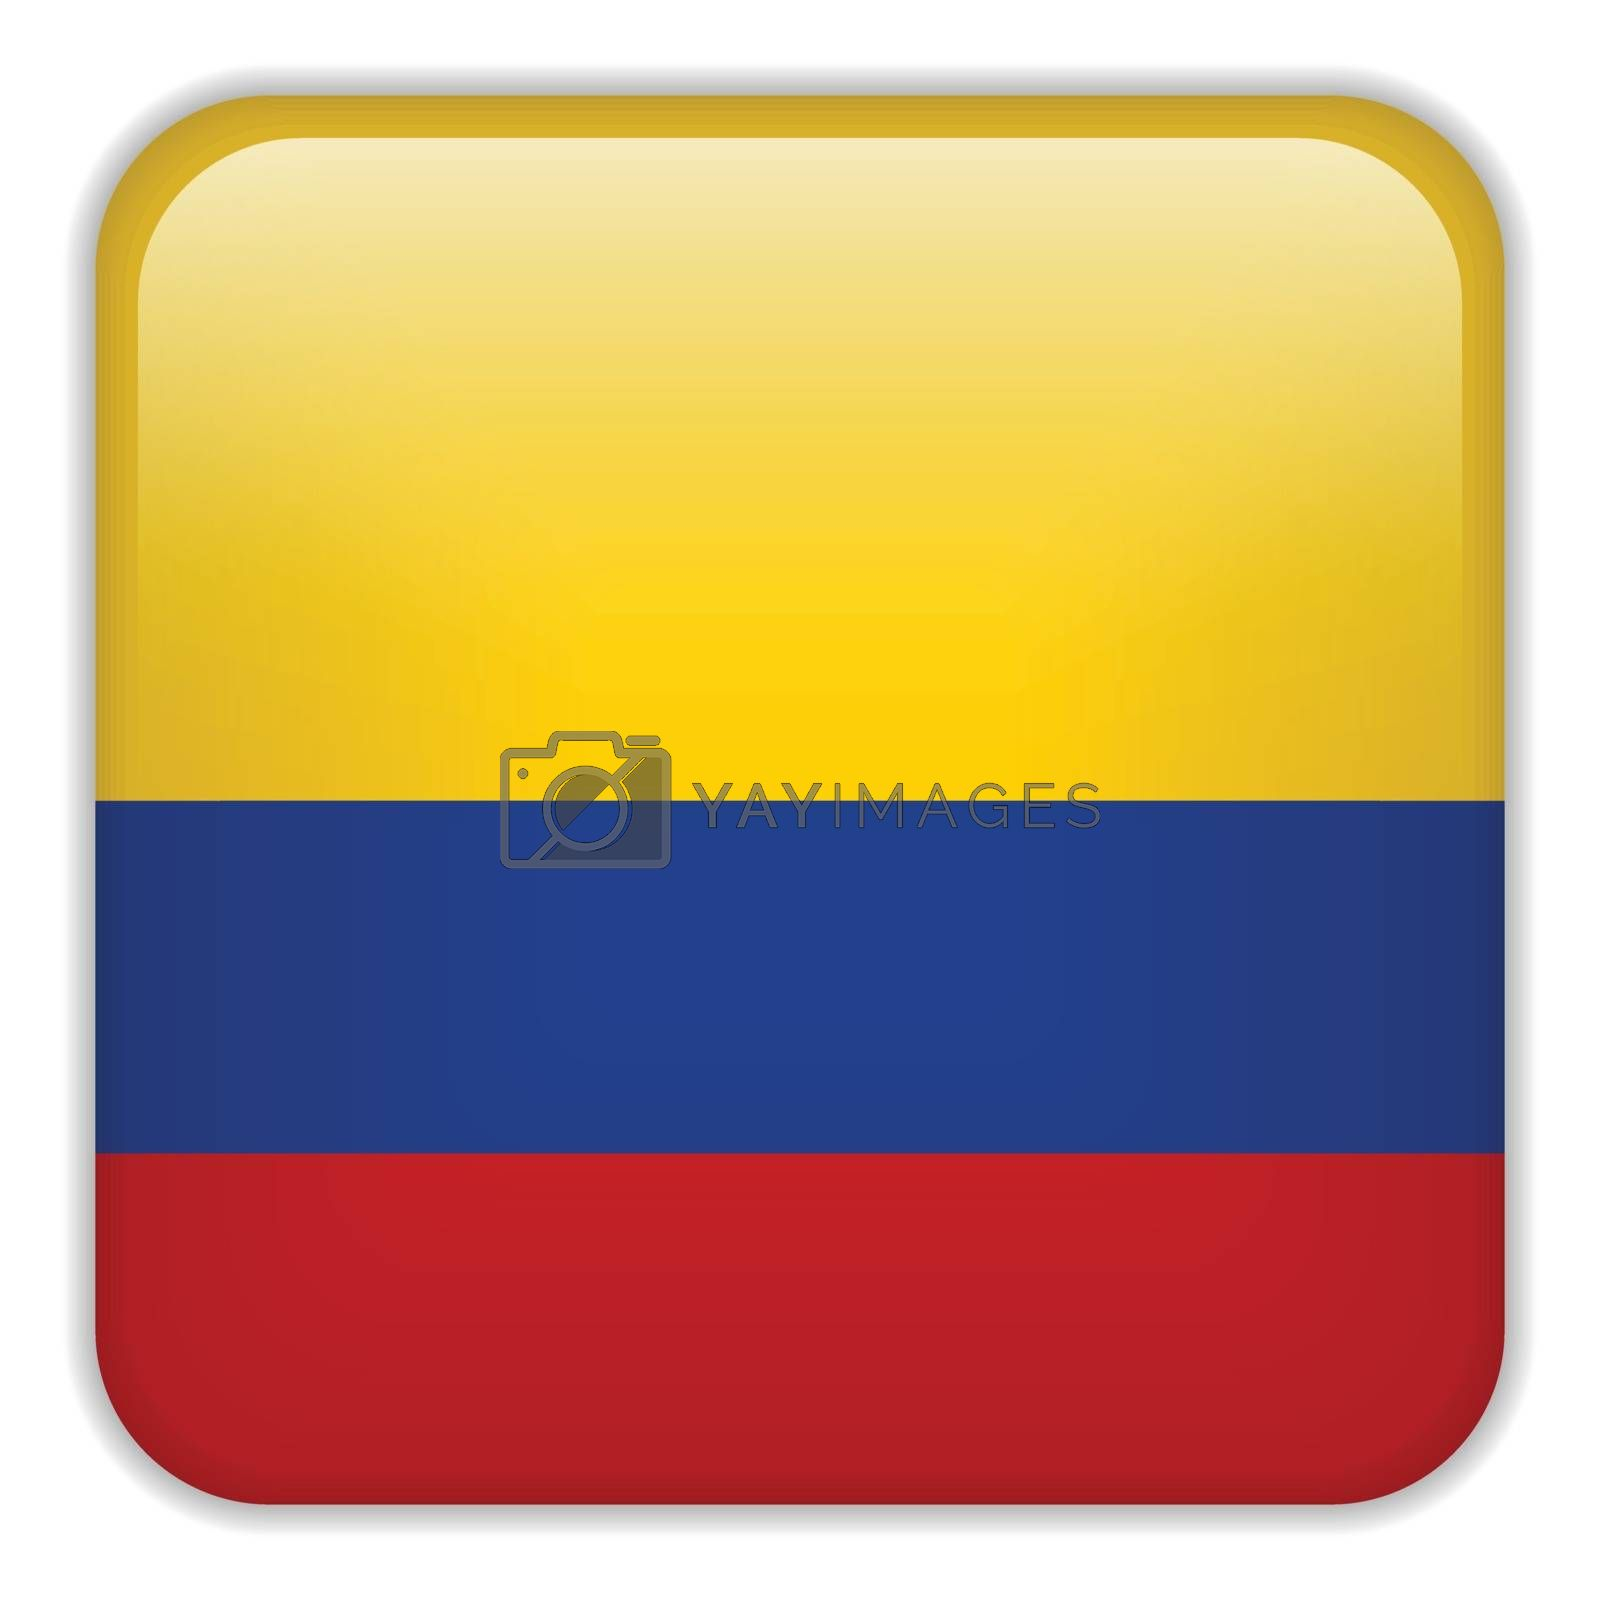 Vector - Colombia Flag Smartphone Application Square Buttons